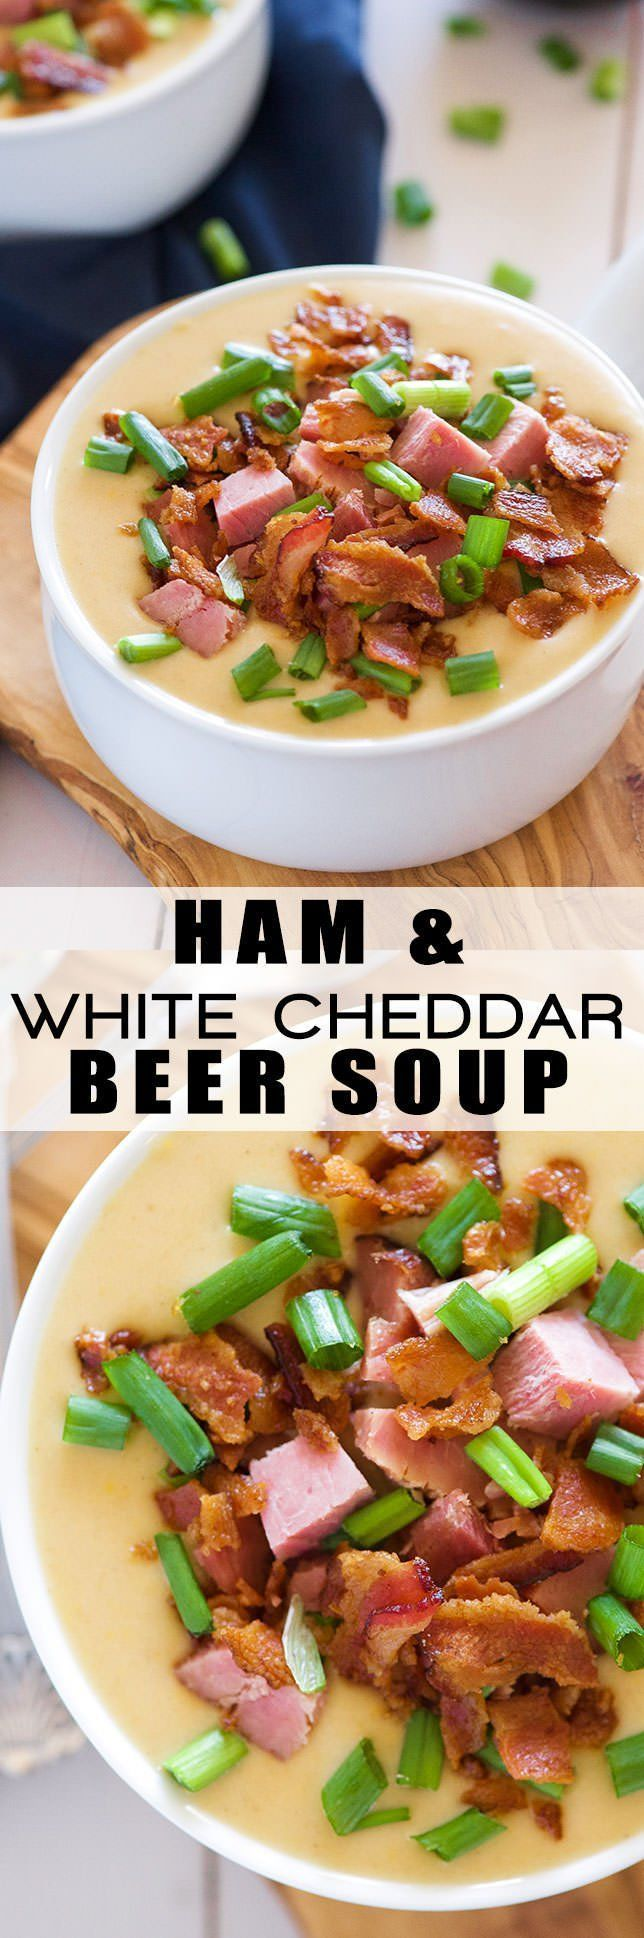 Best Beer Cheese Soup | Easy, Recipes, Bacon,  Healthy, Low Carb, Creamy, With Ham, Simple